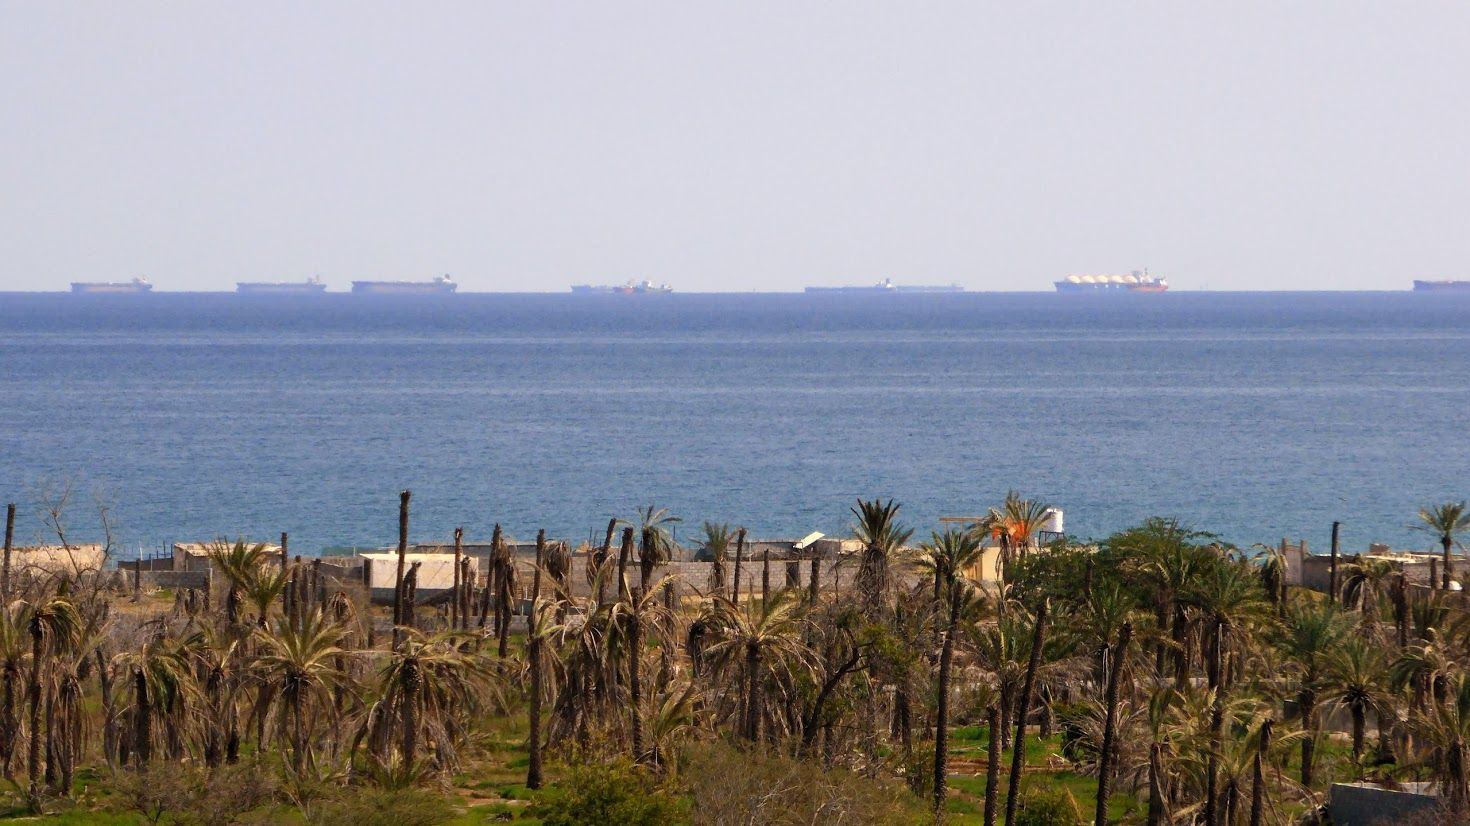 Tankers lined up toward the Straits of Hormuz, view from Biddiyah, UAE